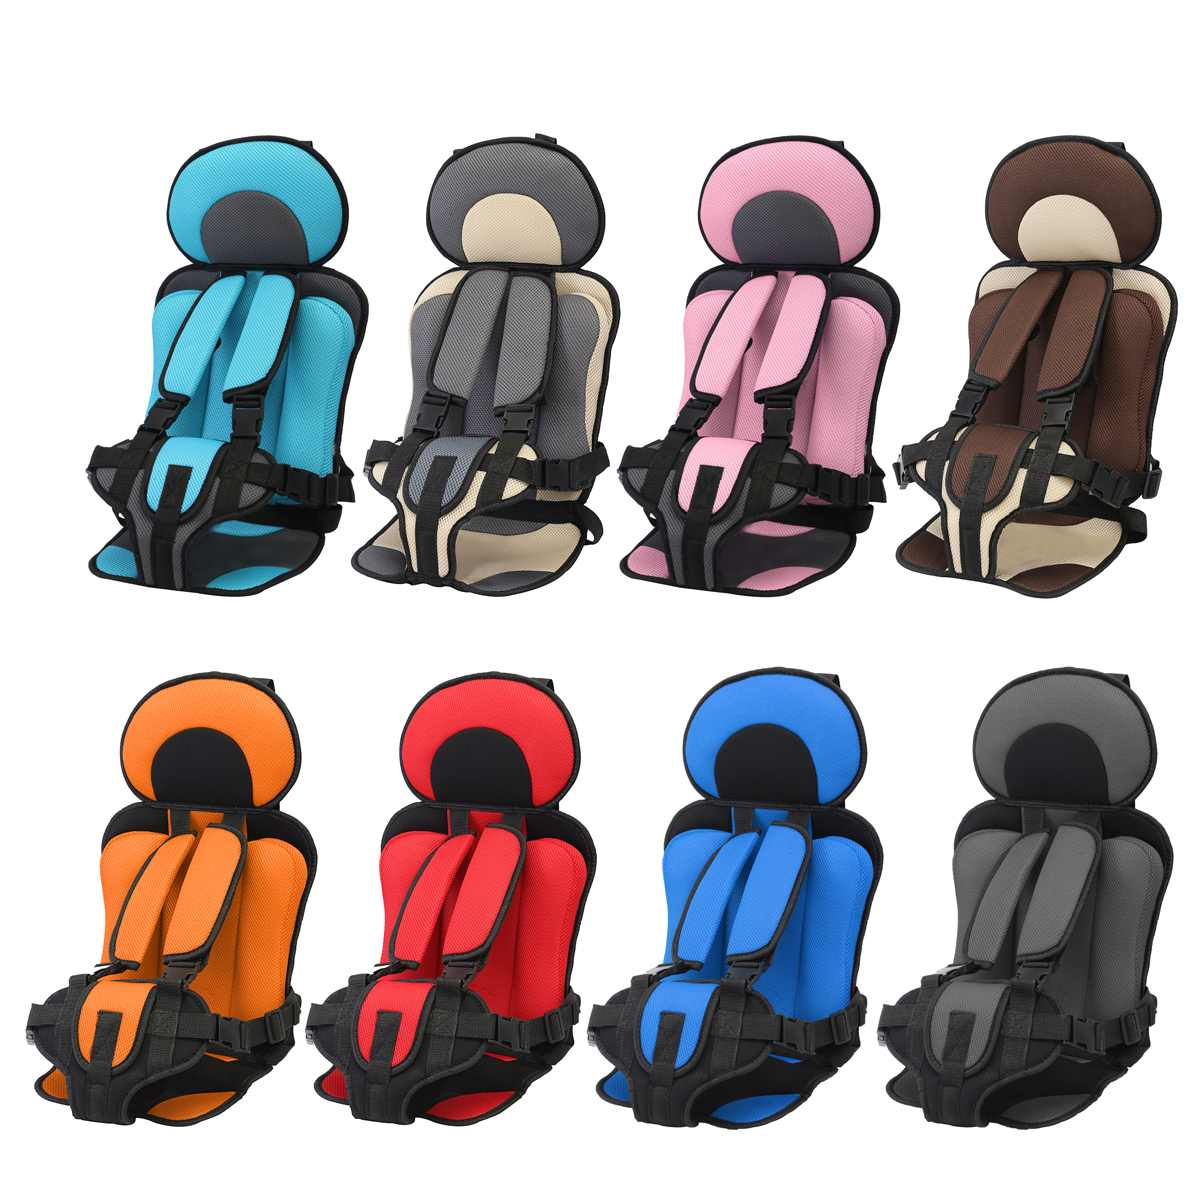 3~12 year old kids Safe Seat Portable Baby Safety Seat Children's Chairs Updated Version Thickening Sponge Kids Child Car Seats